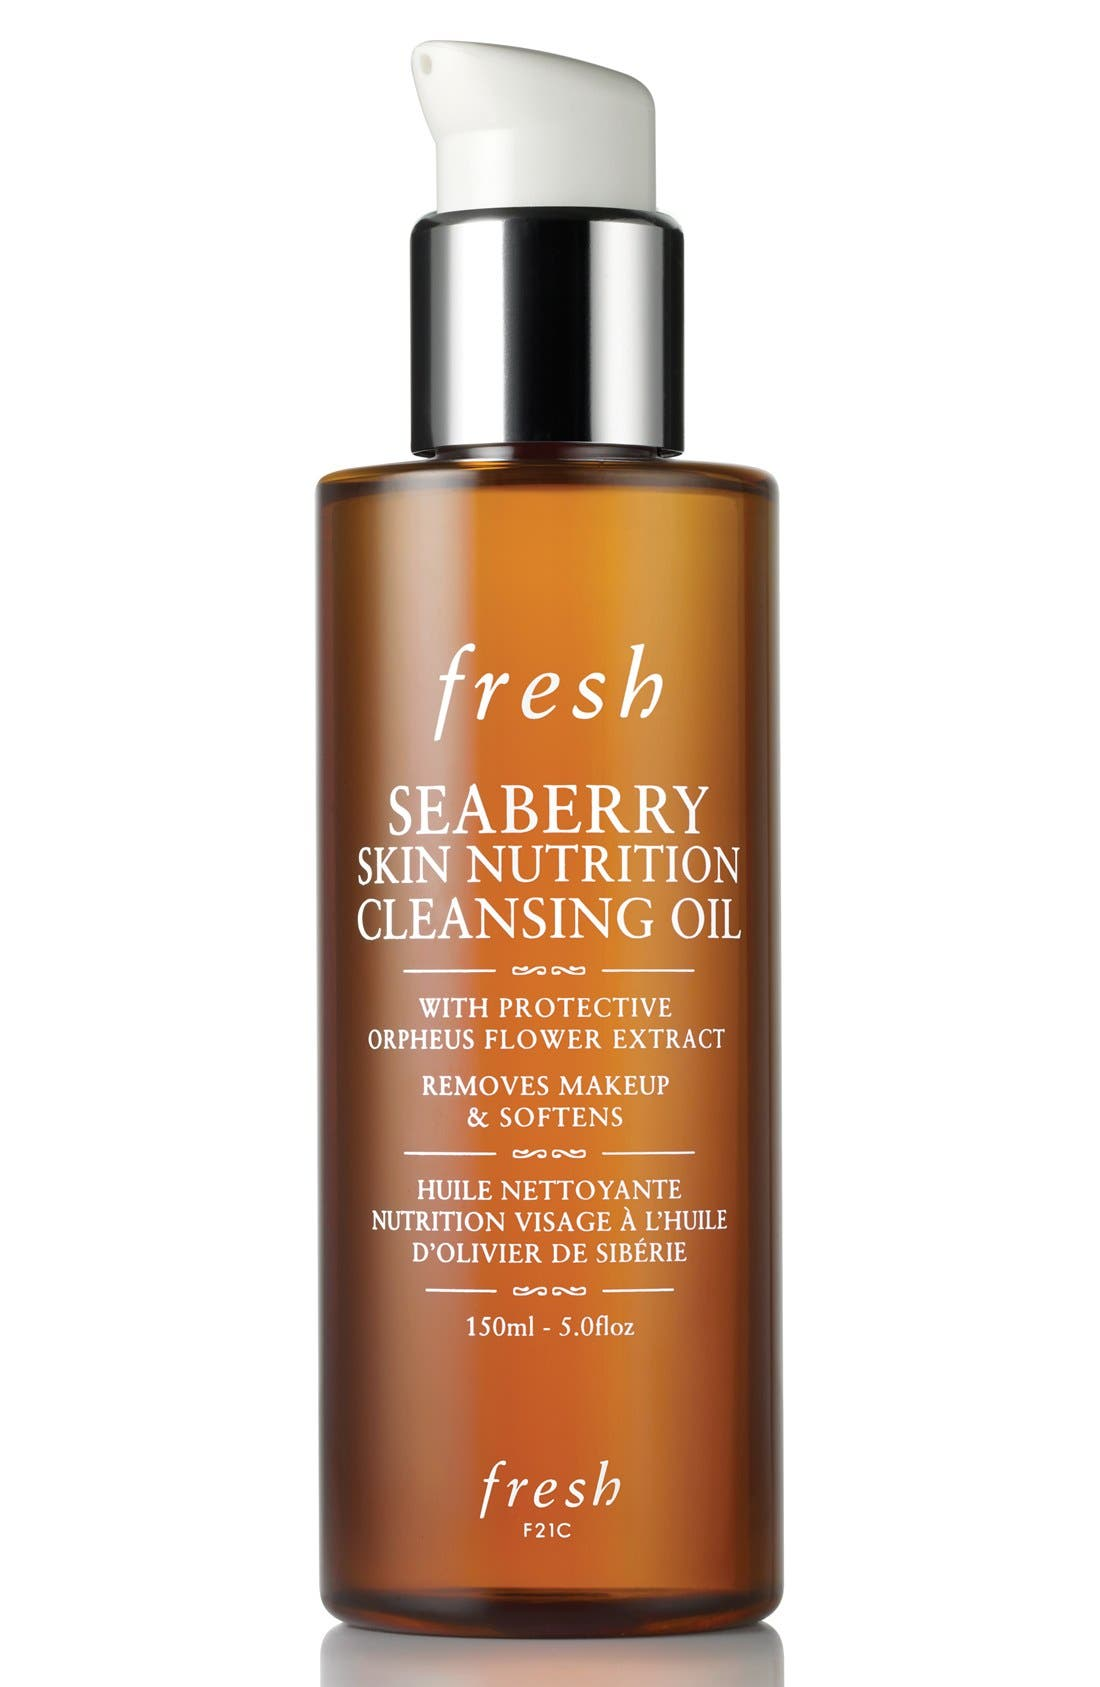 Fresh® Seaberry Skin Nutrition Cleansing Oil